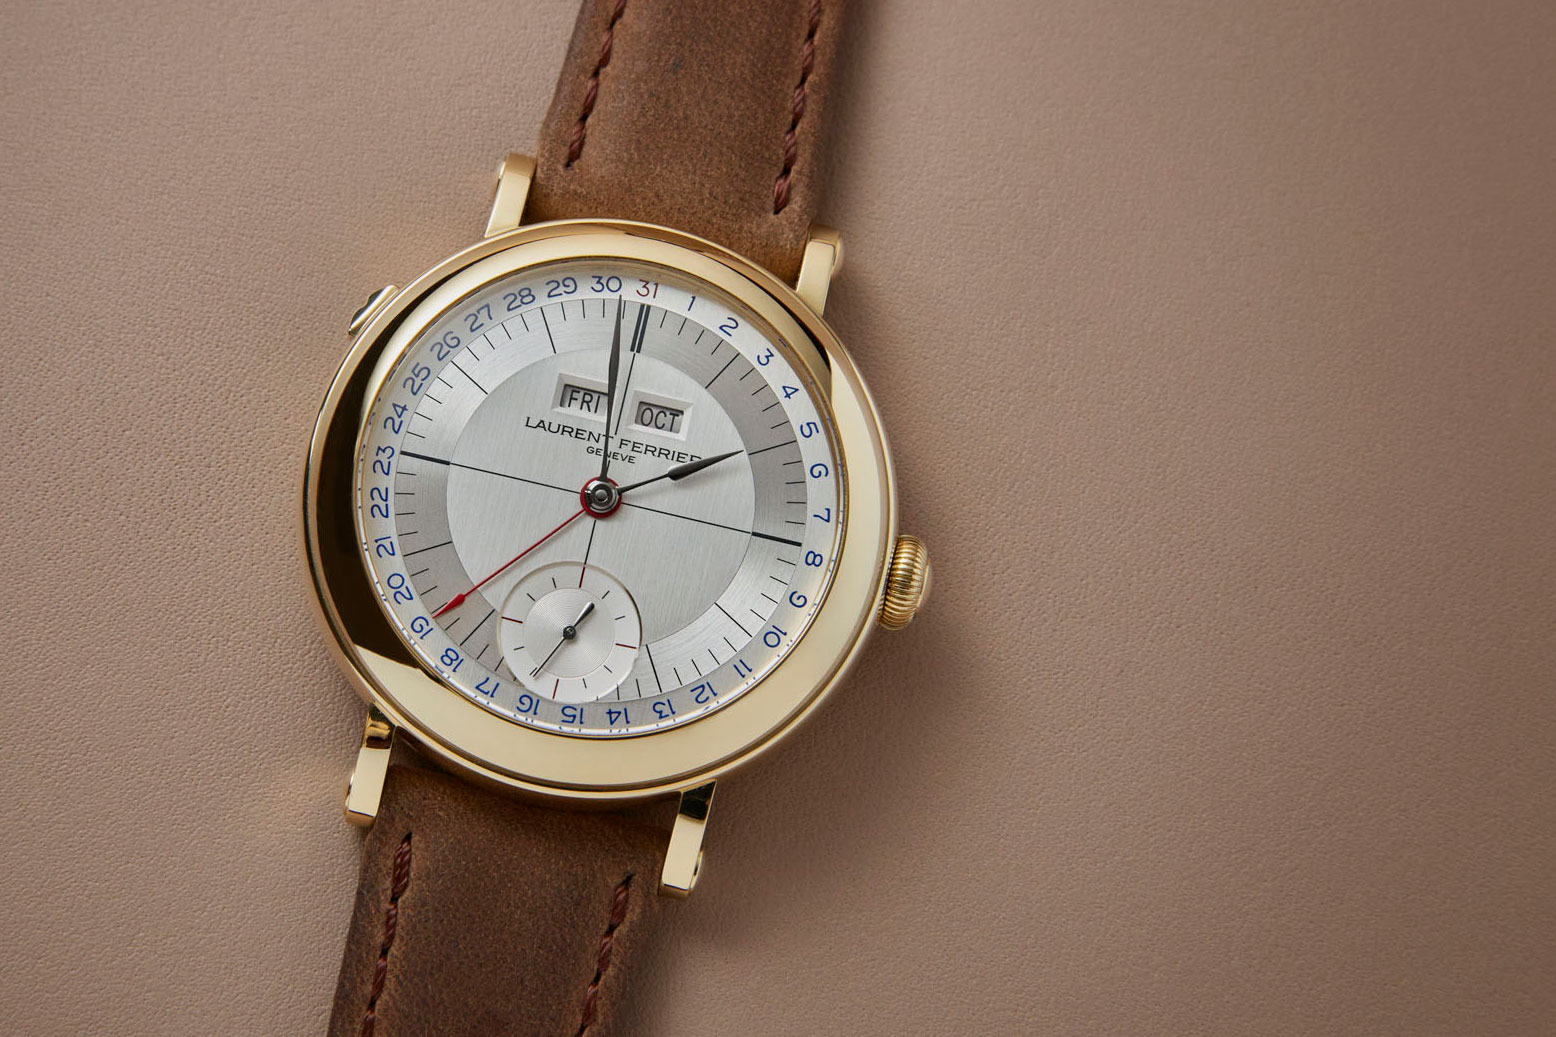 Laurent Ferrier Annual Calendar Montre Ecole 6